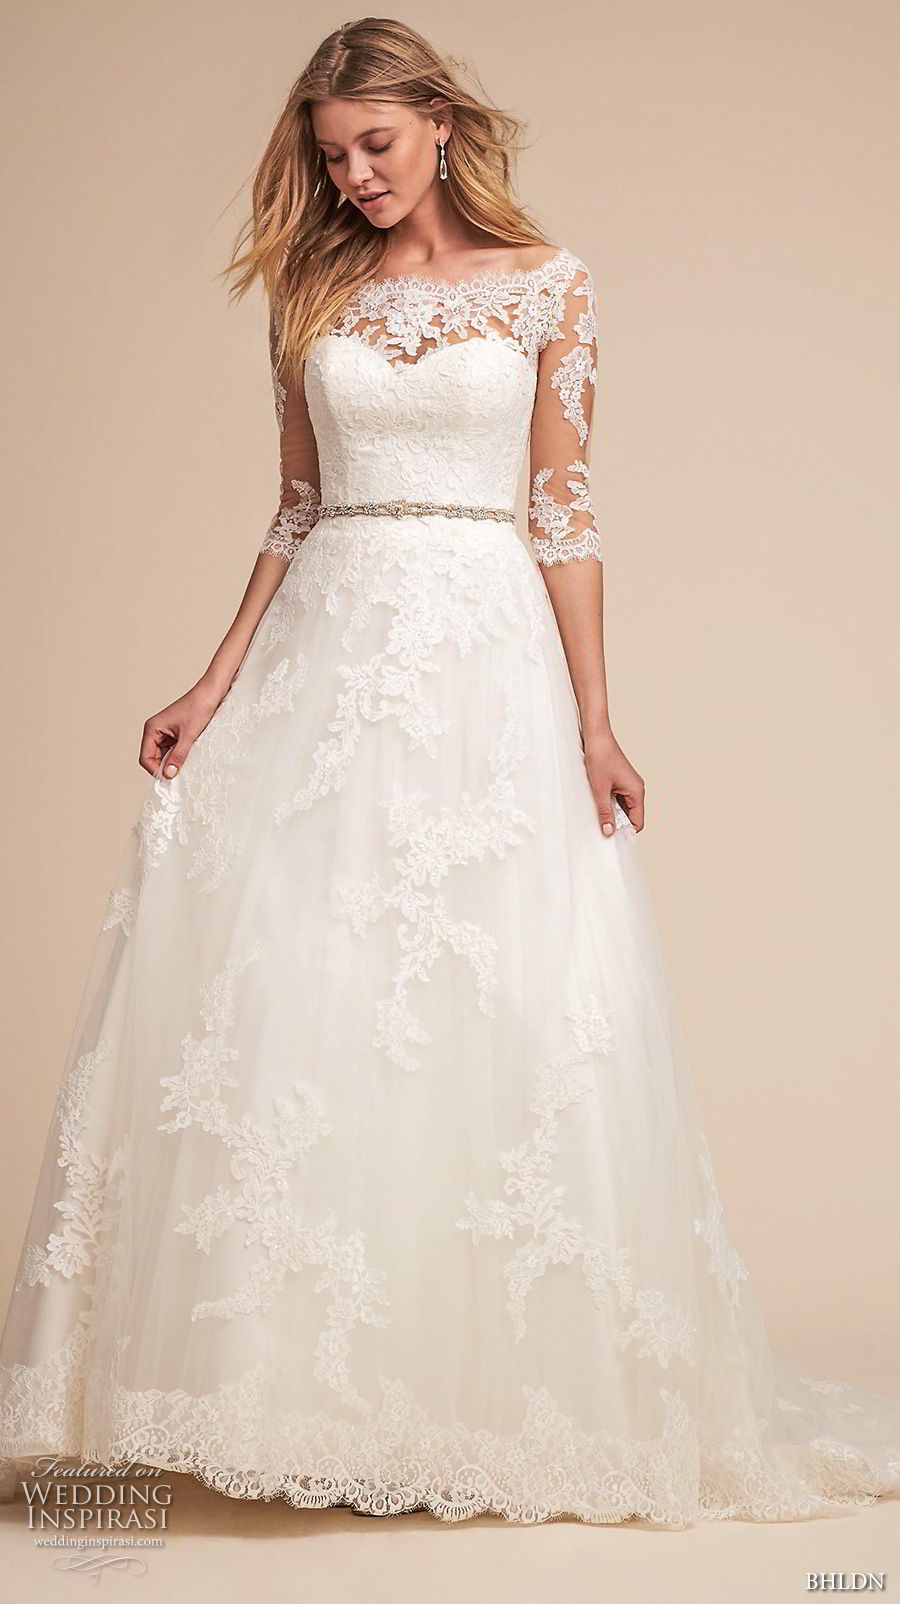 bhldn spring 2018 bridal half sleeves illusion bateau sweetheart neckline full embellishment romantic elegant a  line wedding dress lace back medium train (1) mv